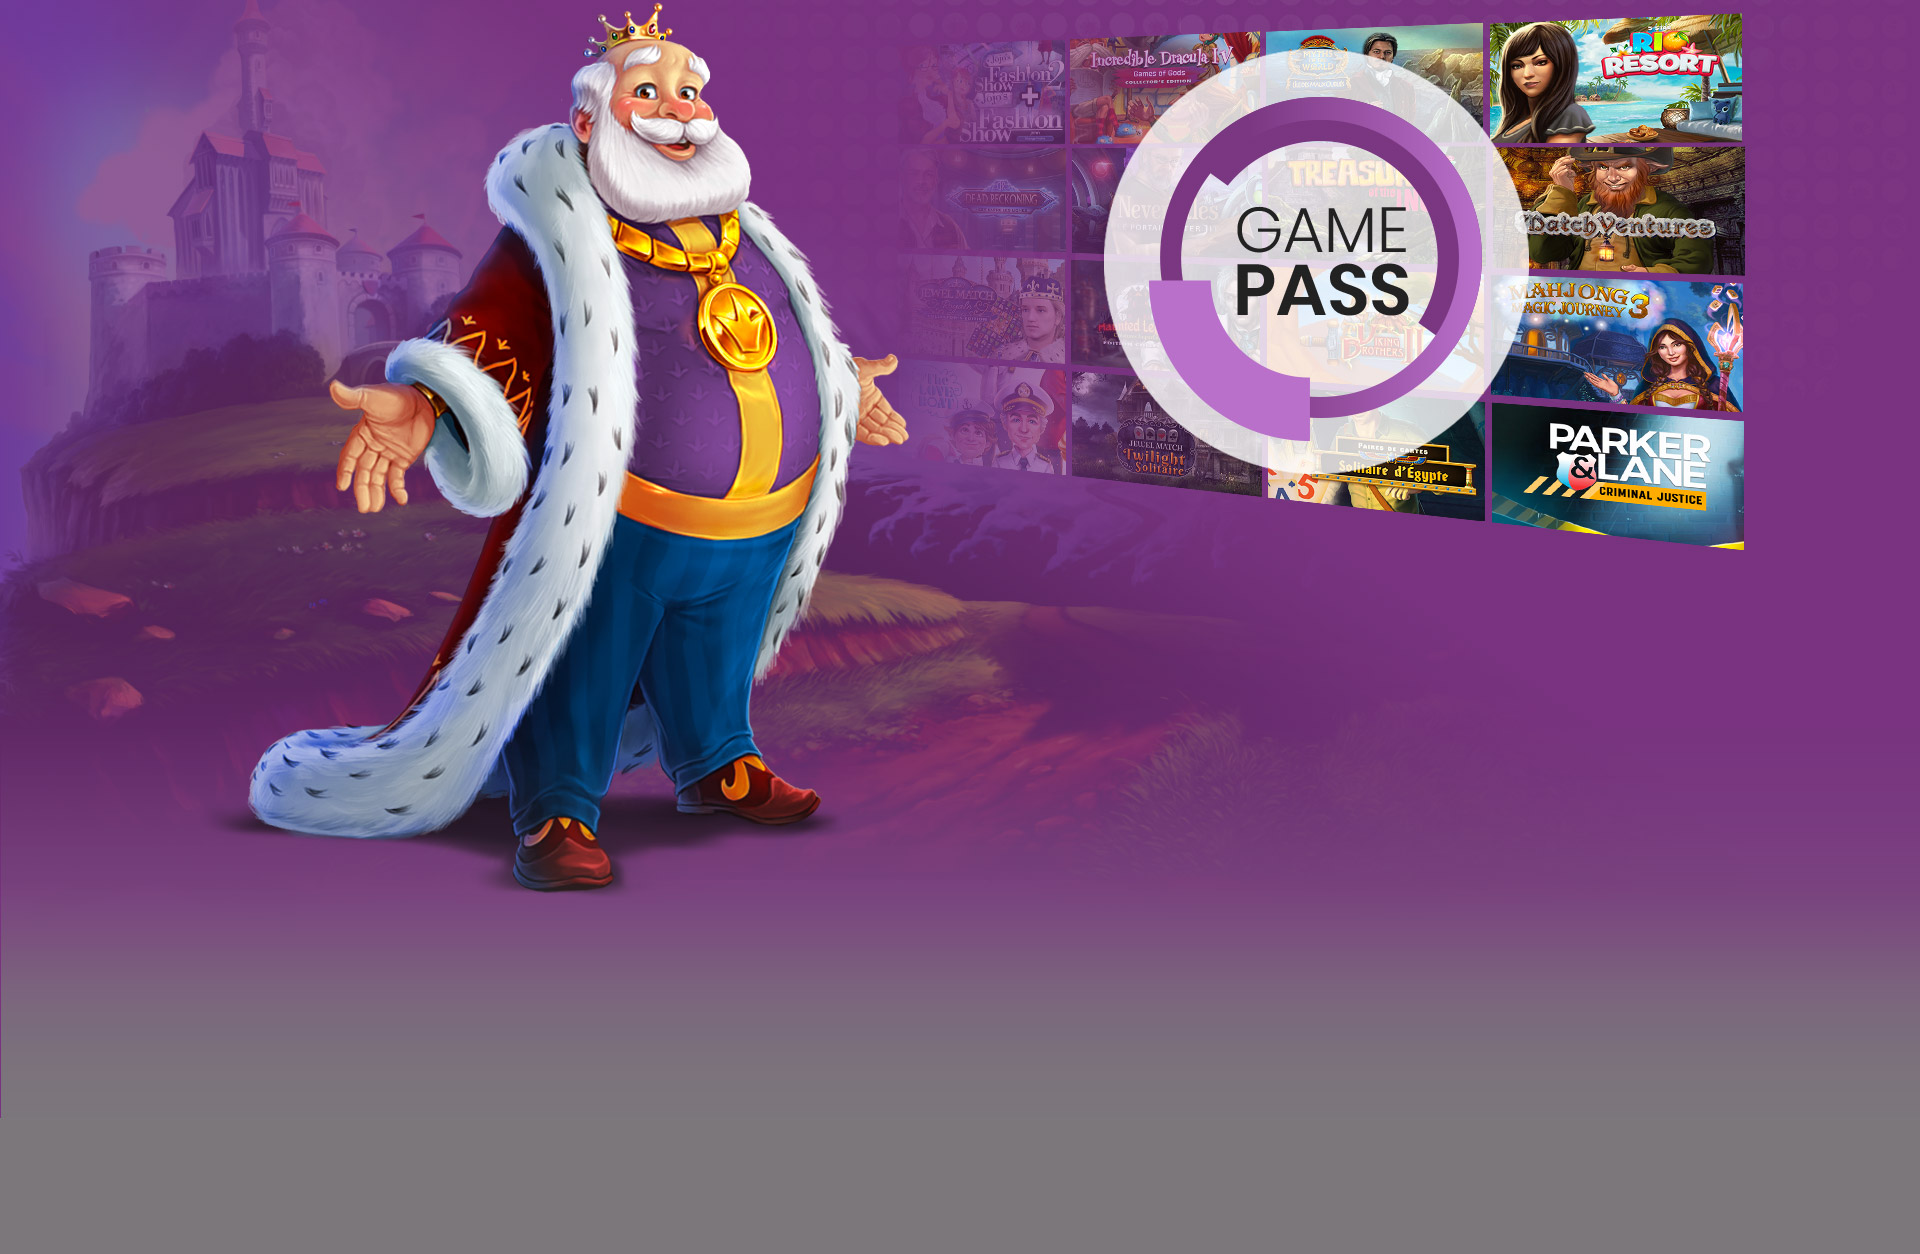 Carousel Game Pass